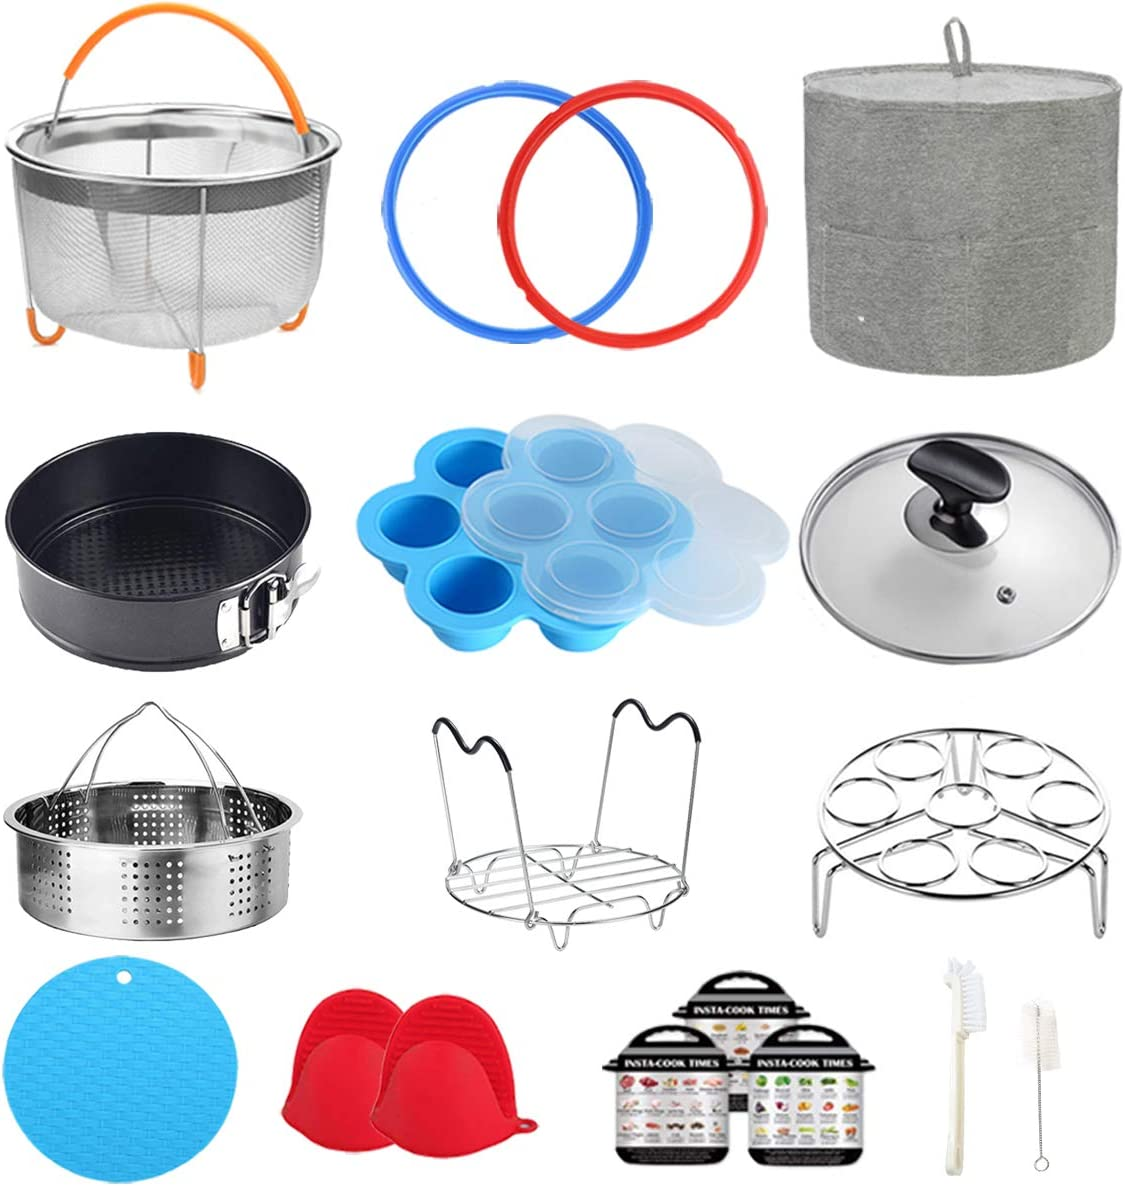 Pressure Cooker Accessories Compatible with Instant Pot 6 Qt - Steamer Basket, Dust Cover, Glass Lid, Silicone Sealing Rings, Egg Bites Mold, Springform Pan, Egg Steamer Rack and More